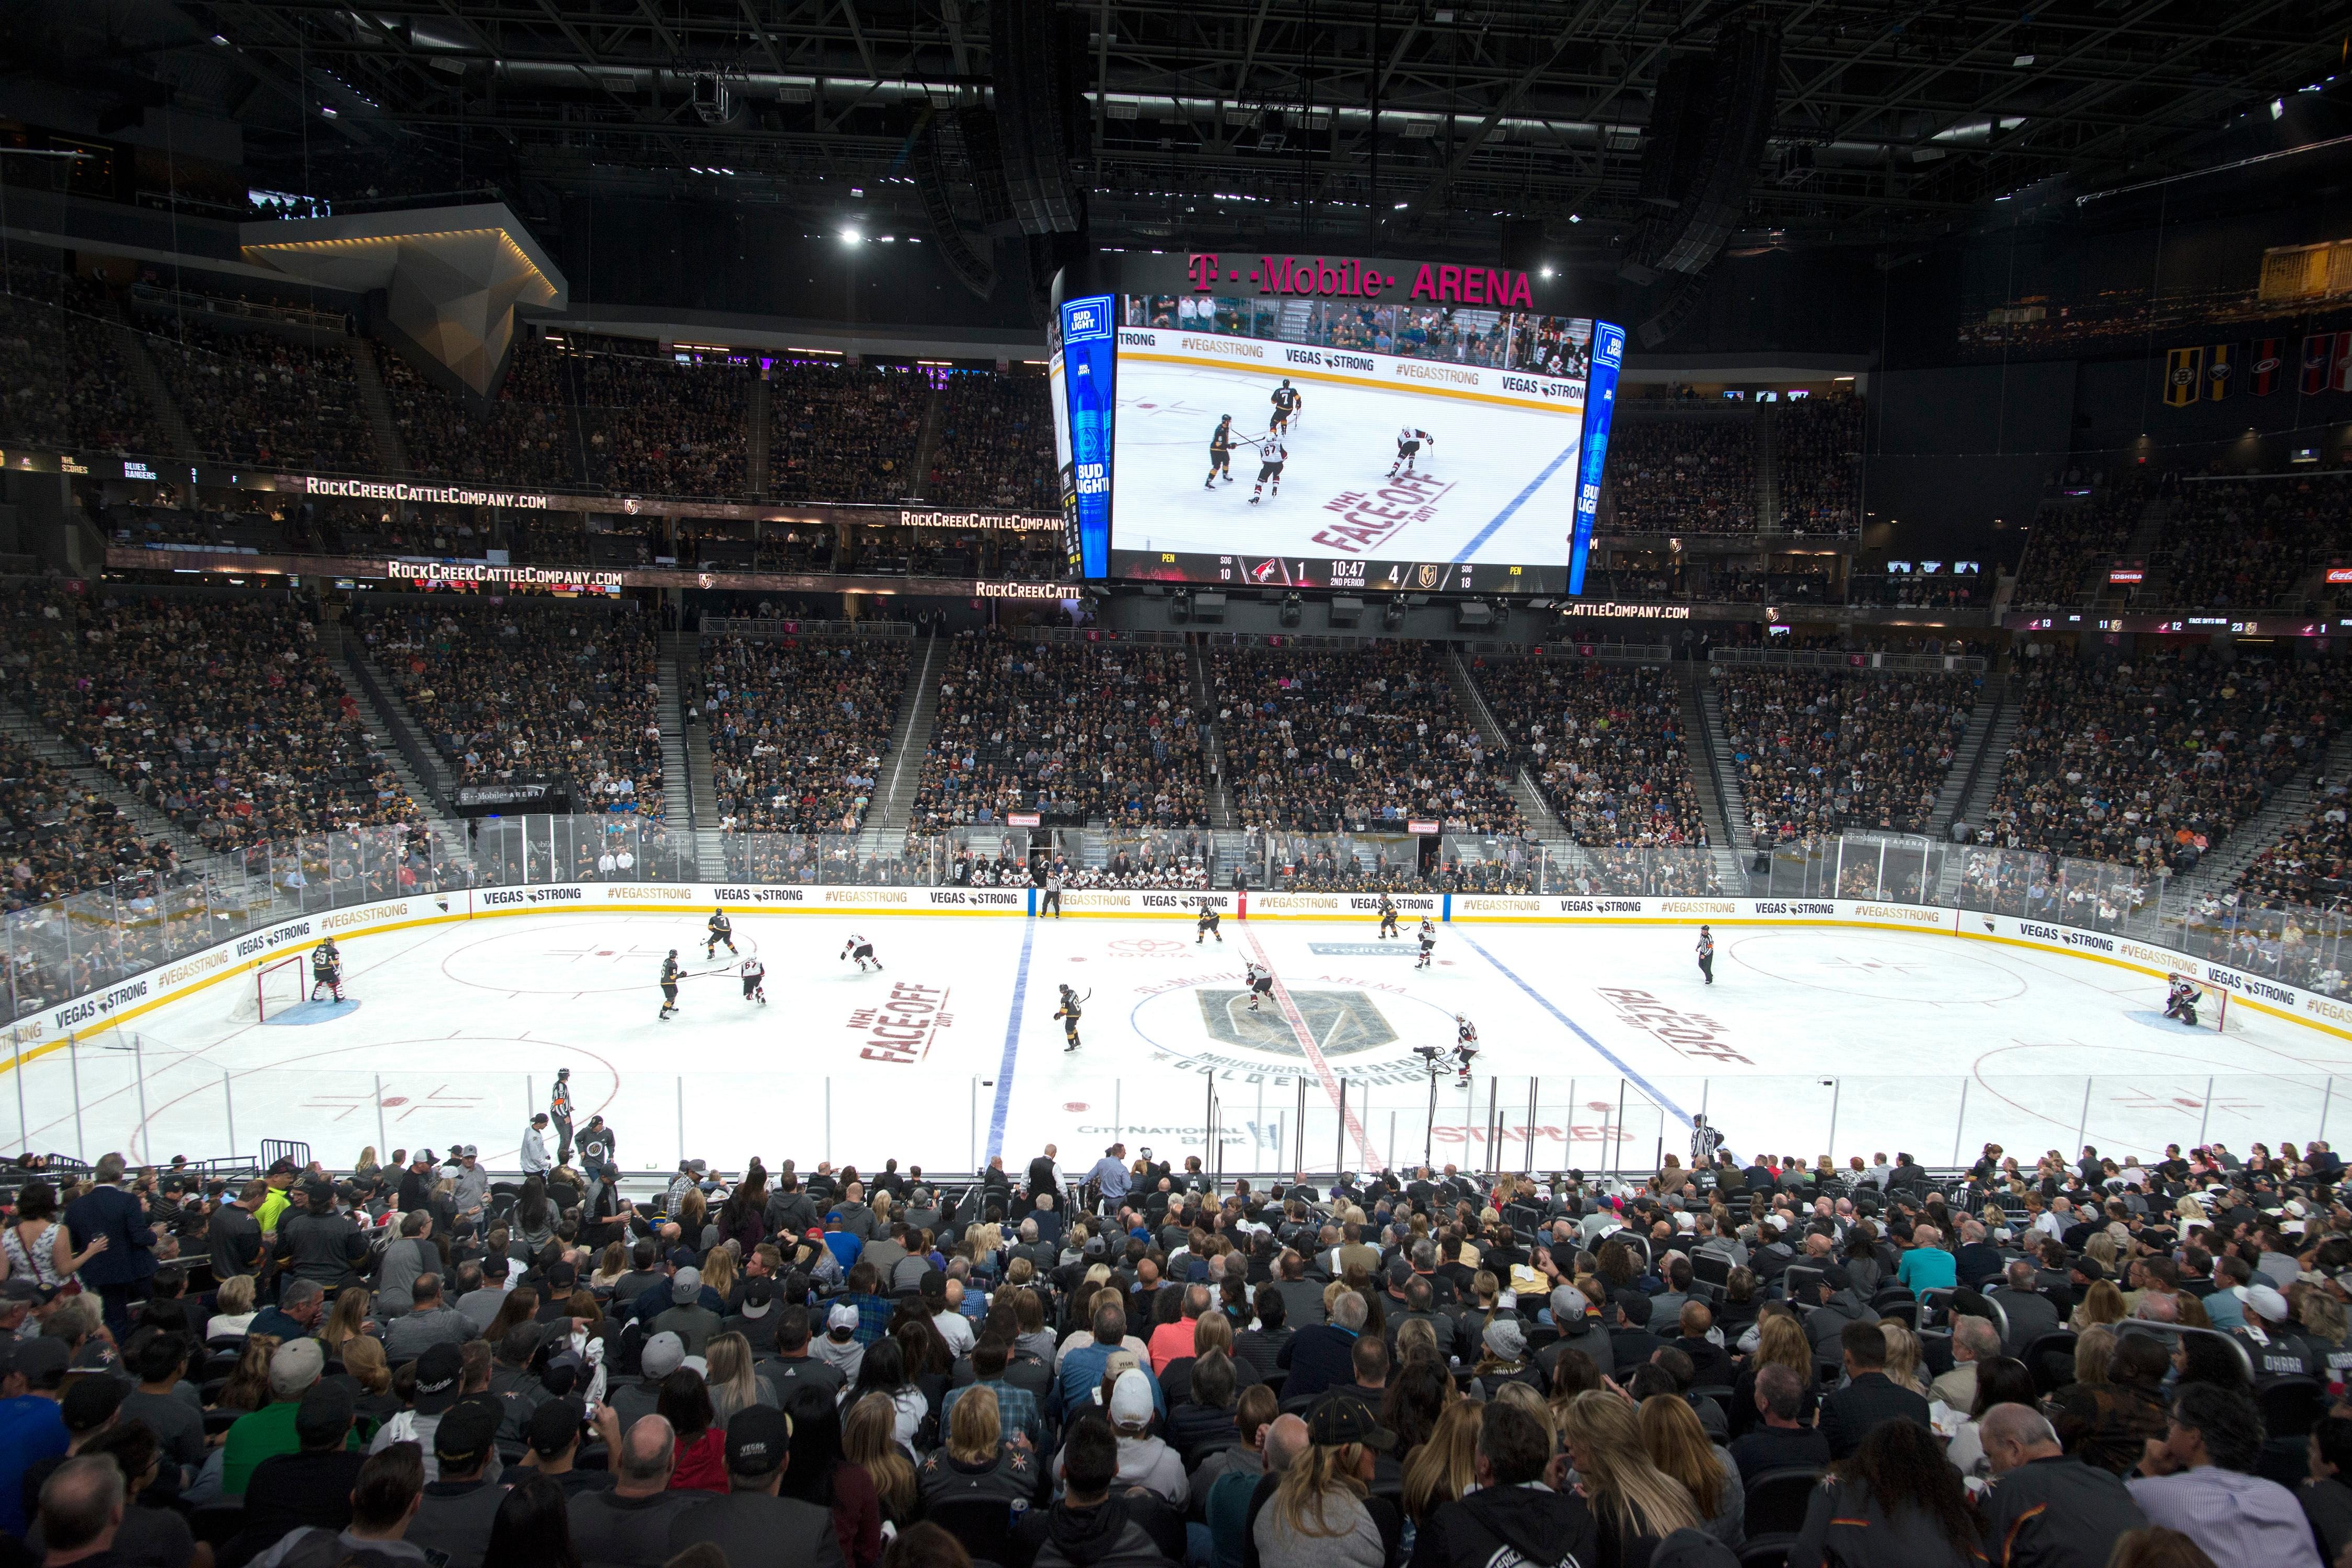 The Vegas Golden Knights take on the Arizona Coyotes during the Knights home opener Tuesday, Oct. 10, 2017, at the T-Mobile Arena. The Knights won 5-2 to extend their winning streak to 3-0. CREDIT: Sam Morris/Las Vegas News Bureau